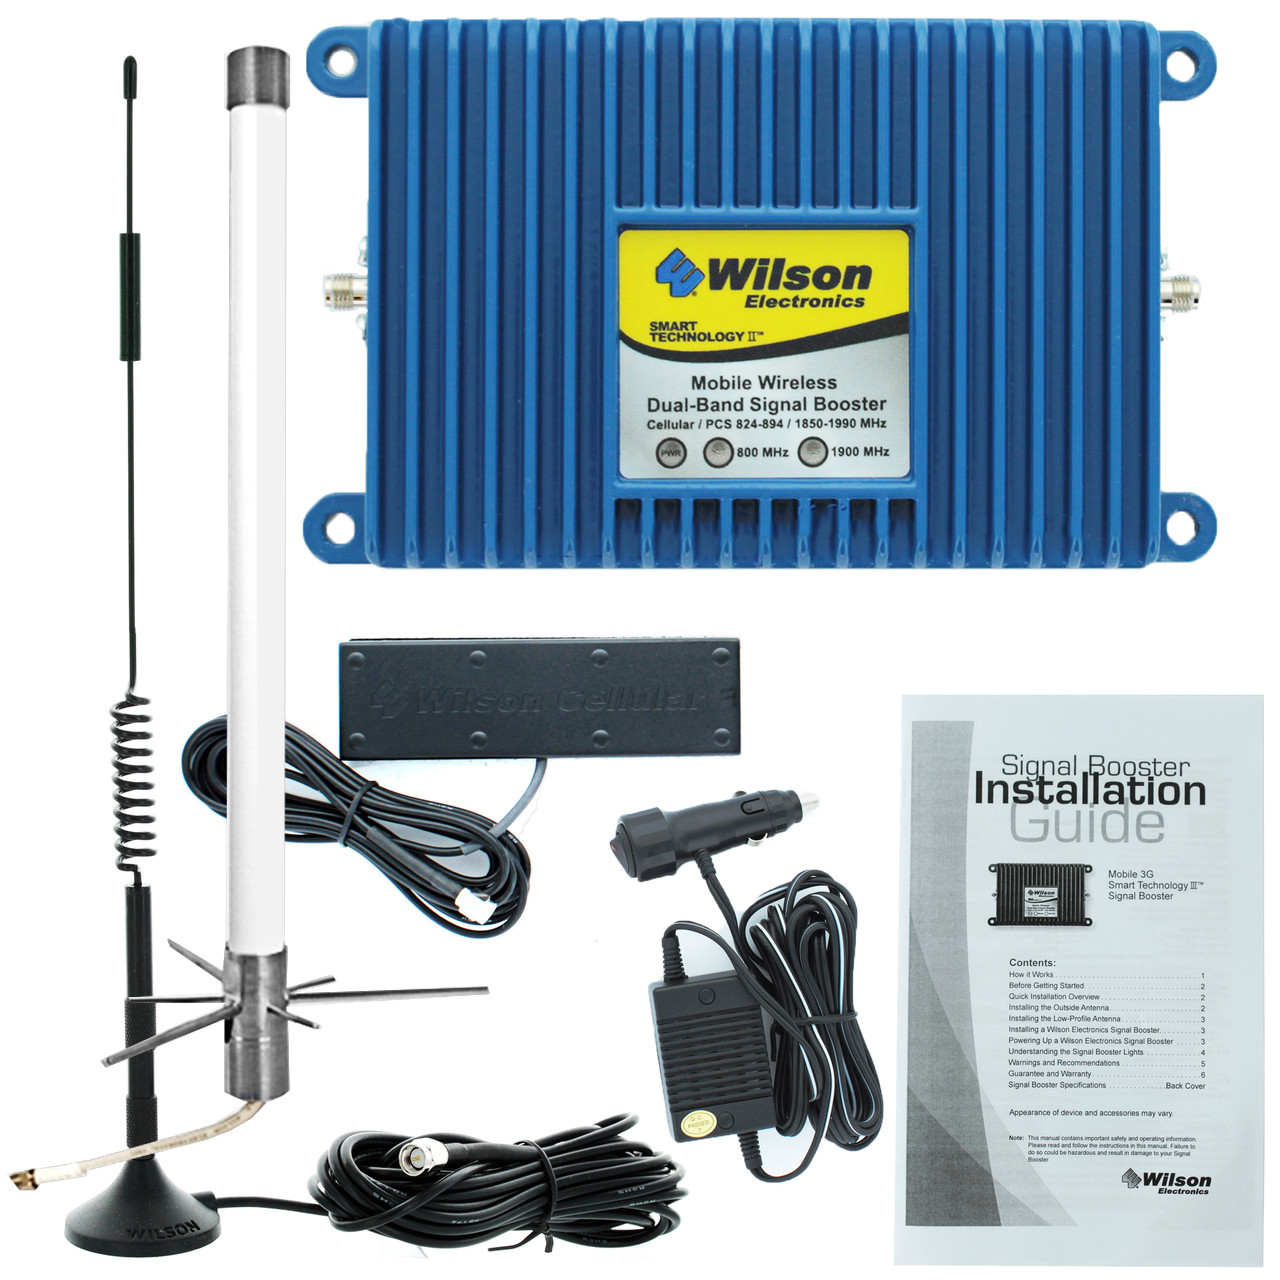 Wilson Mobile 3G +50dB Amplifier Kit w/ Marine Antenna (308430) - 460102-M - Complete Kit